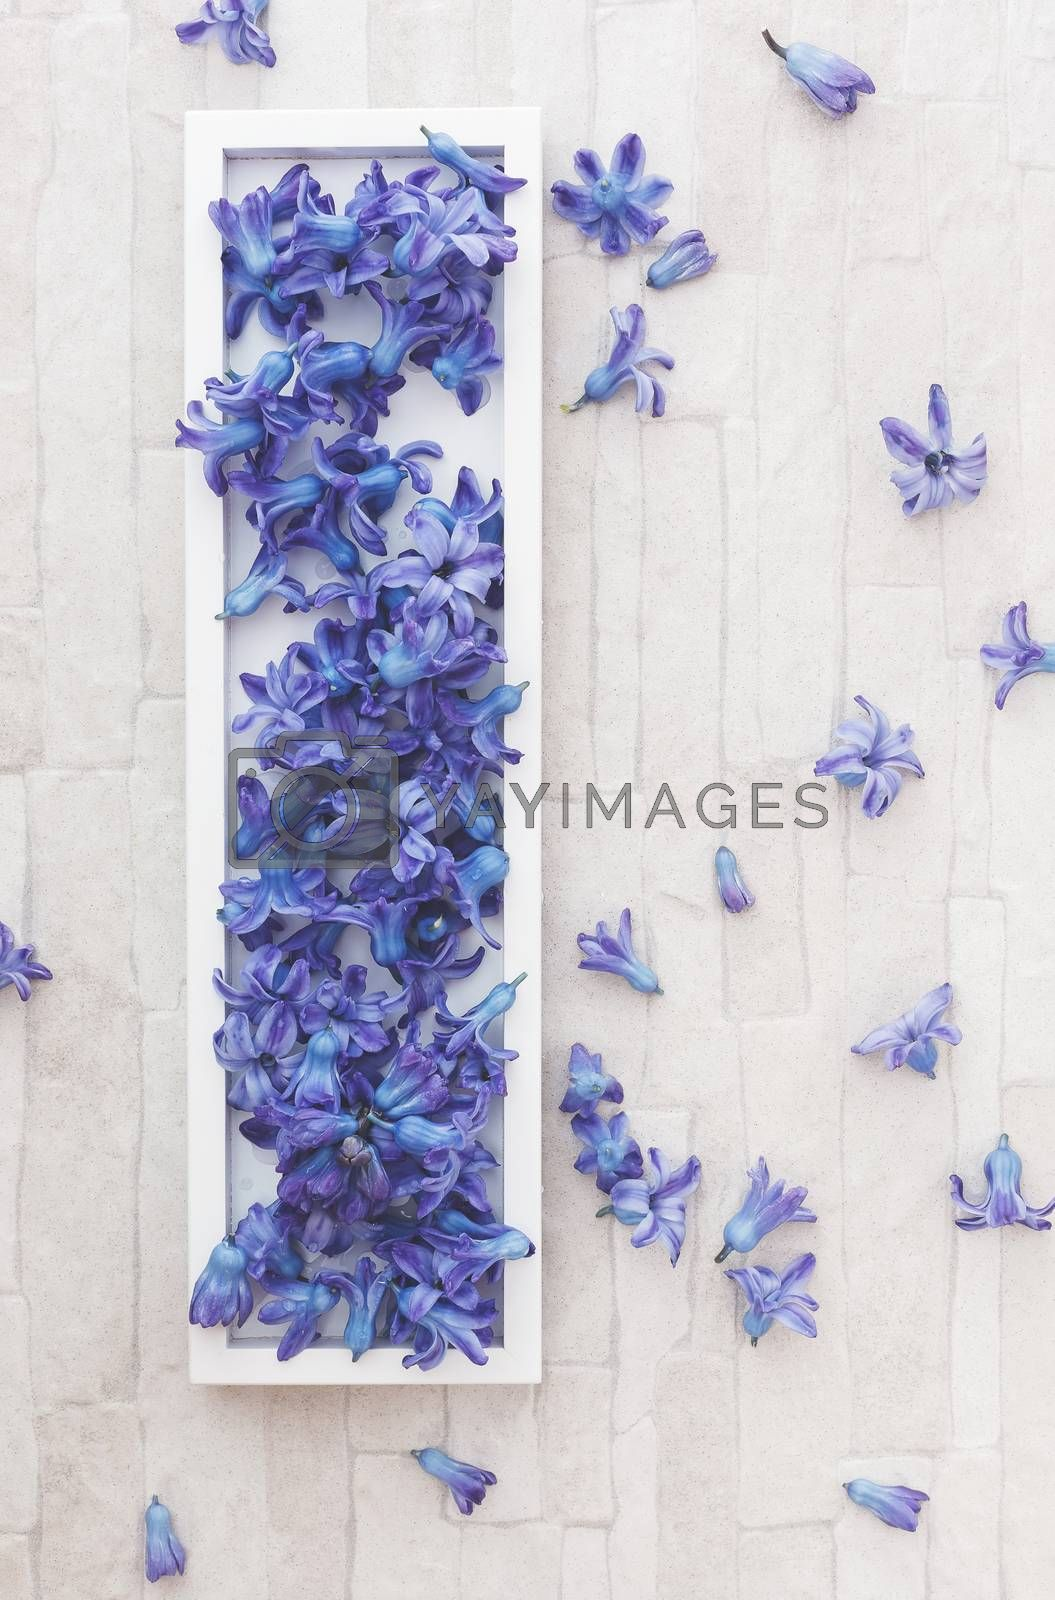 Blue hyacinths flowers arrangement on a tray. Overhead view with blank space